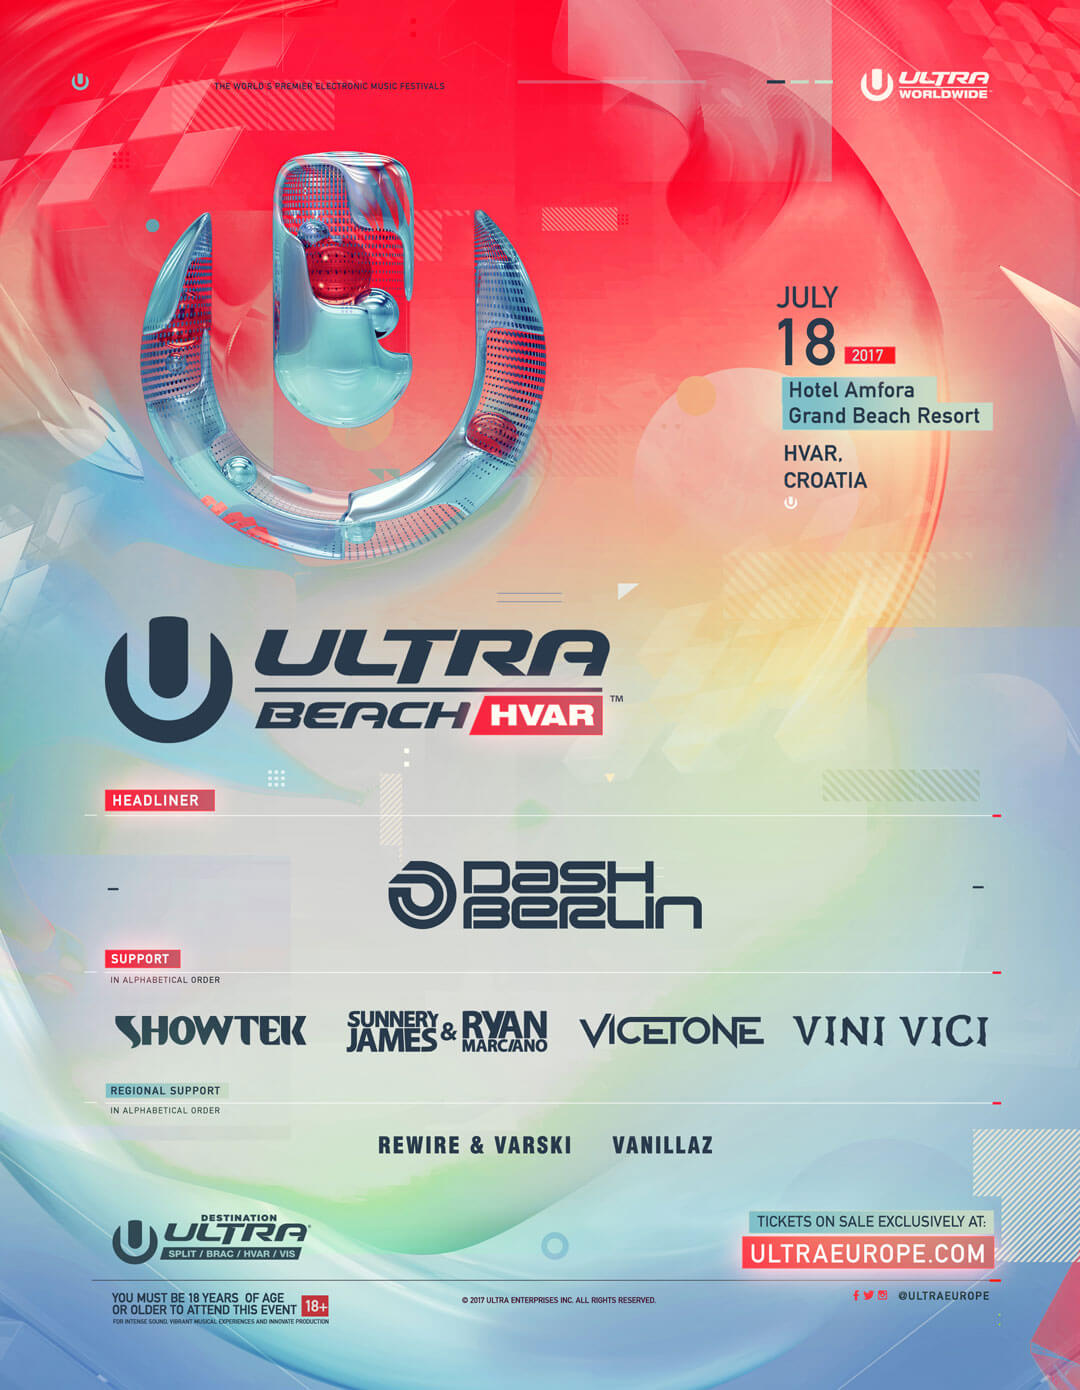 ULTRA Beach Hvar 2017 Announces Lineup